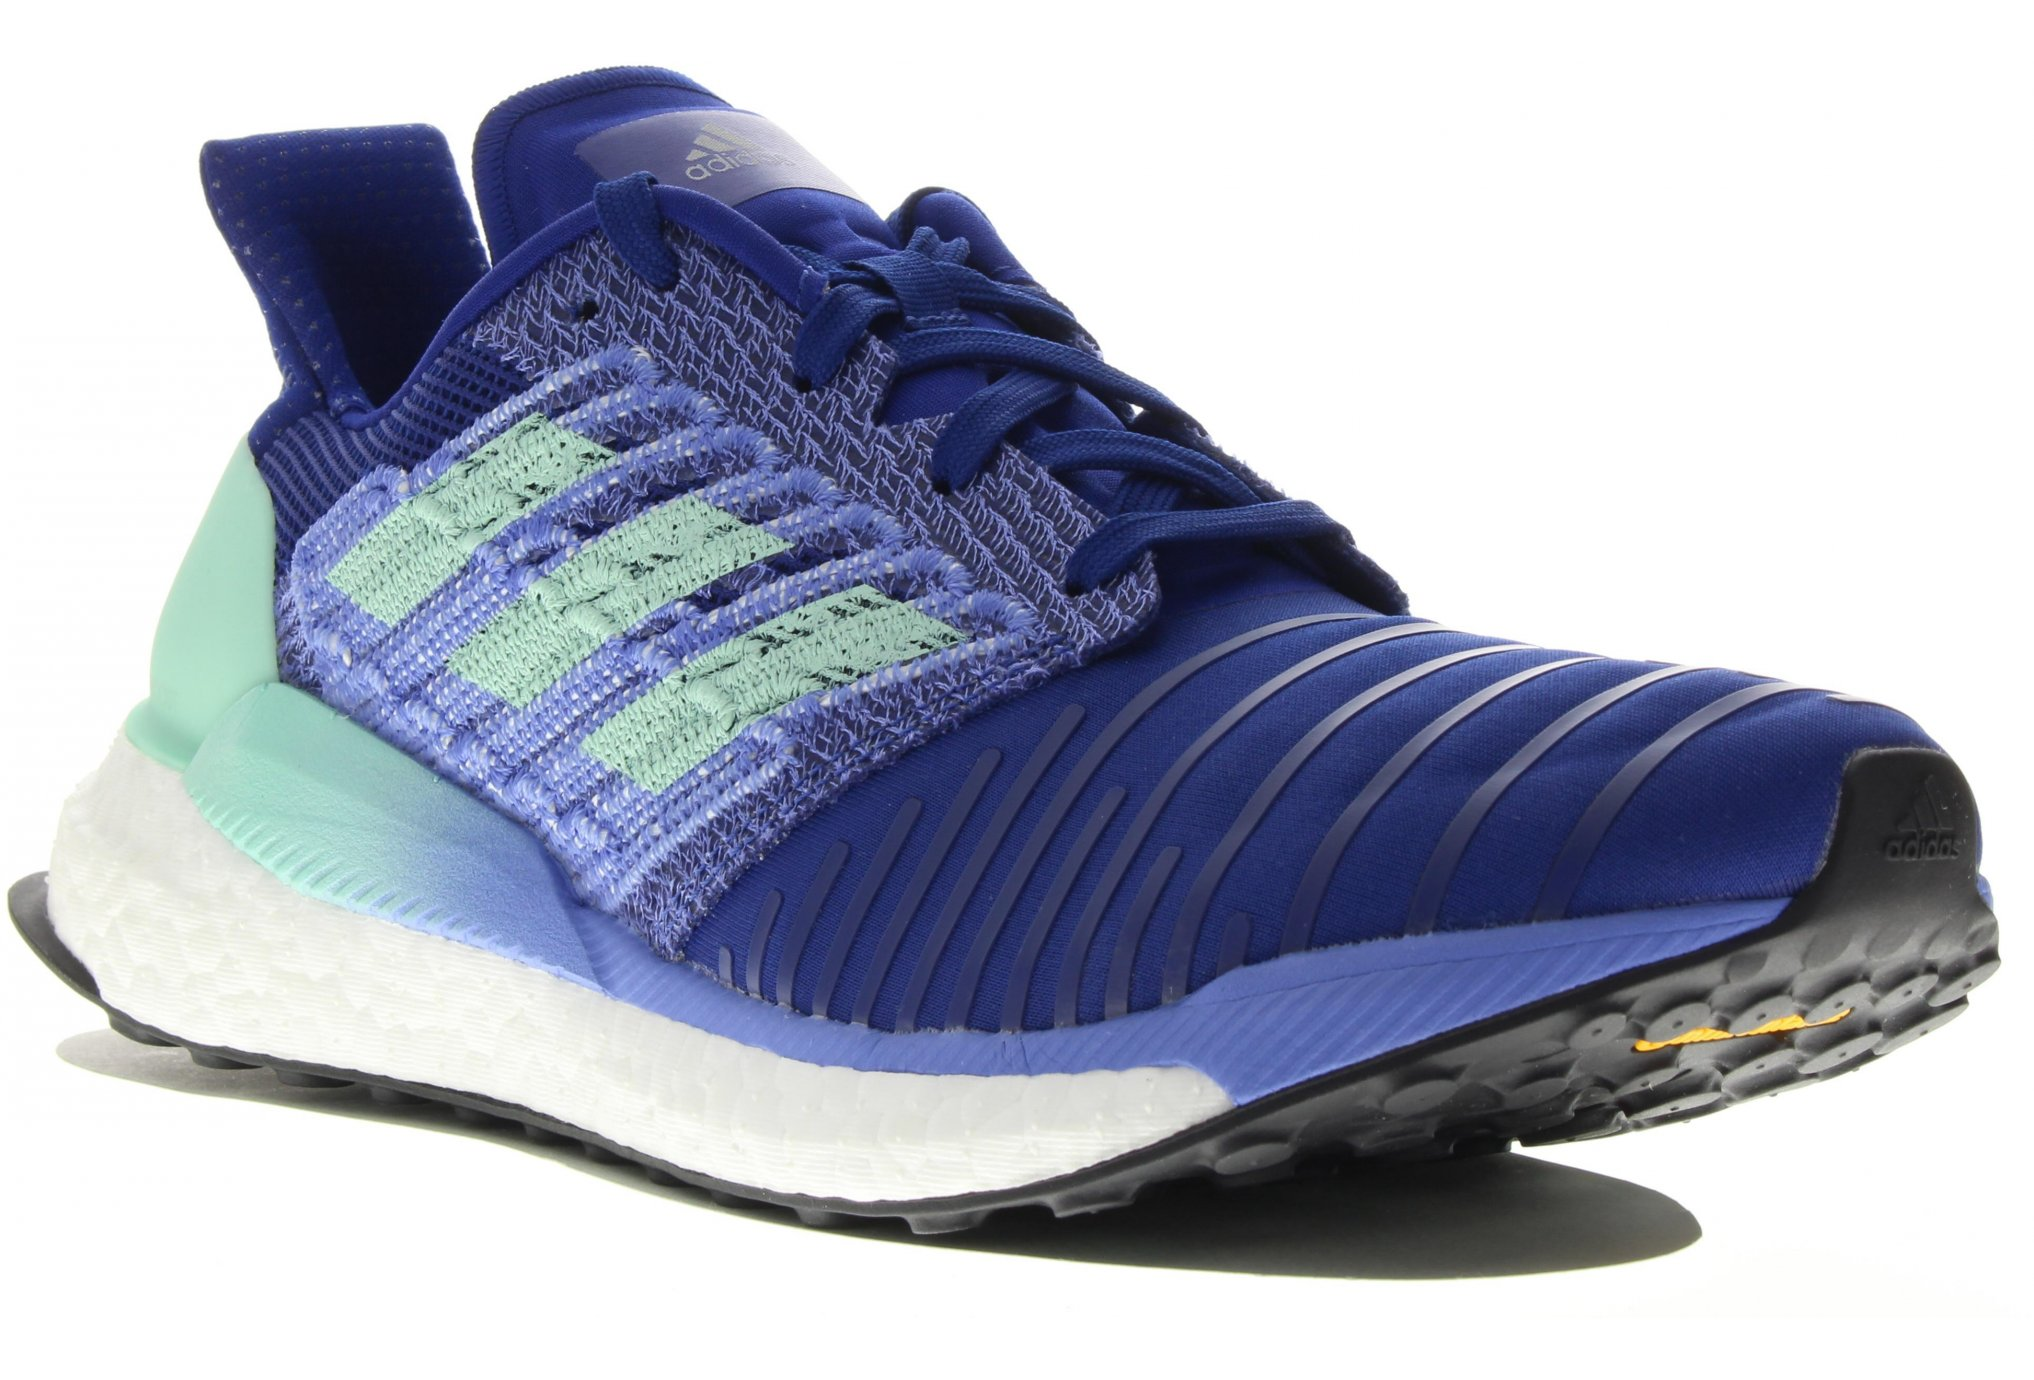 nouveau style 1cb73 00d30 adidas Solar Boost W Chaussures running femme - Trimag